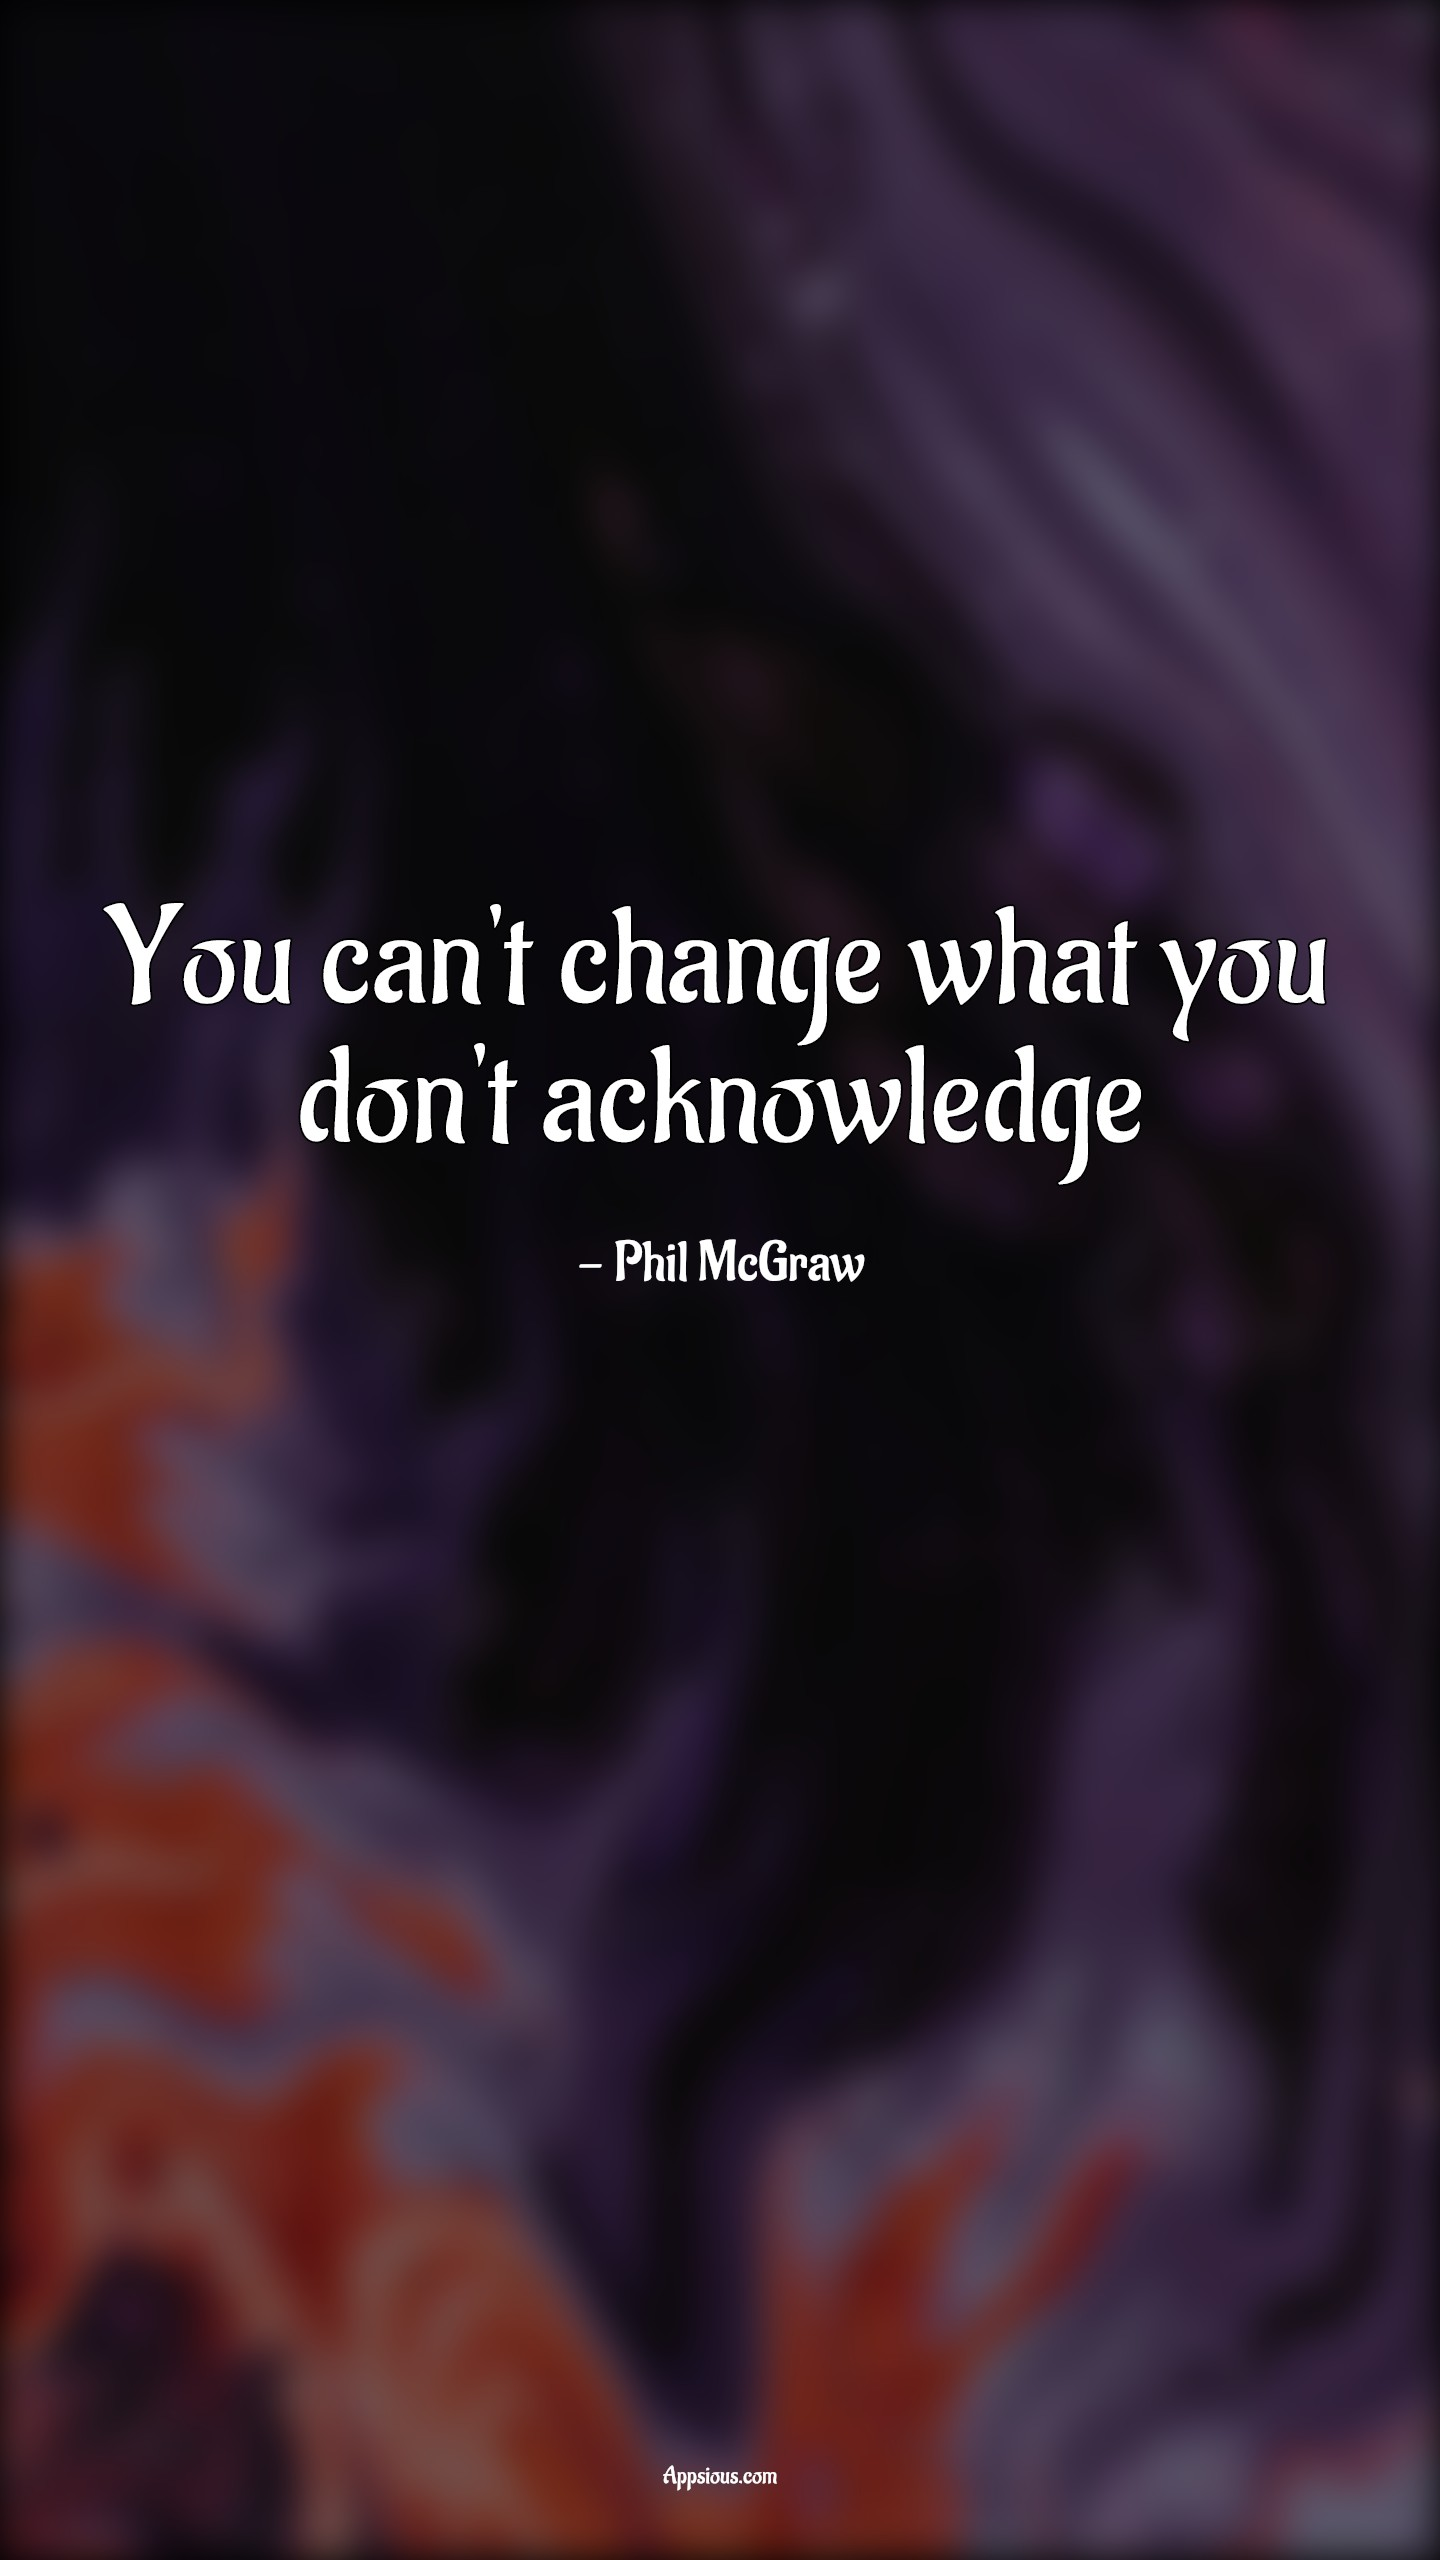 You can't change what you don't acknowledge